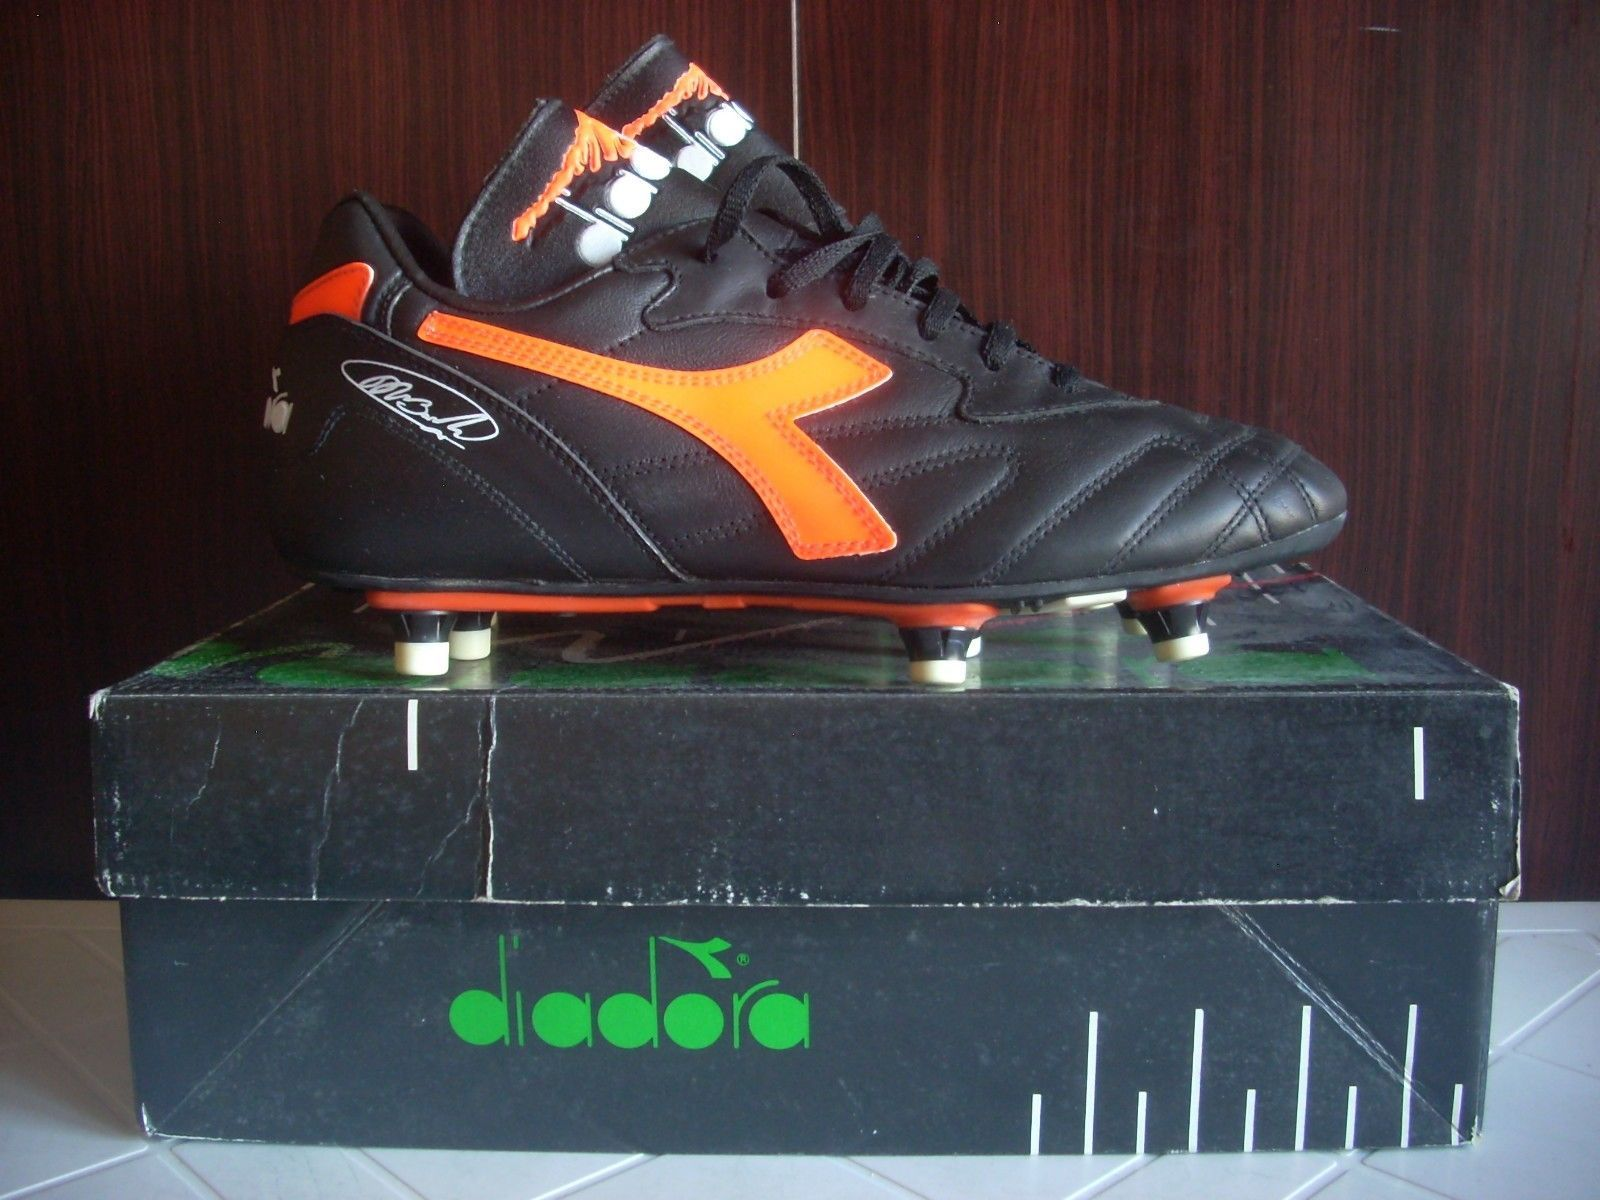 timeless design 4741d 23e58 DEADSTOCK DIADORA FOOTBALL BOOTS VAN BASTEN MILAN HOLLAND ITALY 90 41  ORANGE VTG   eBay